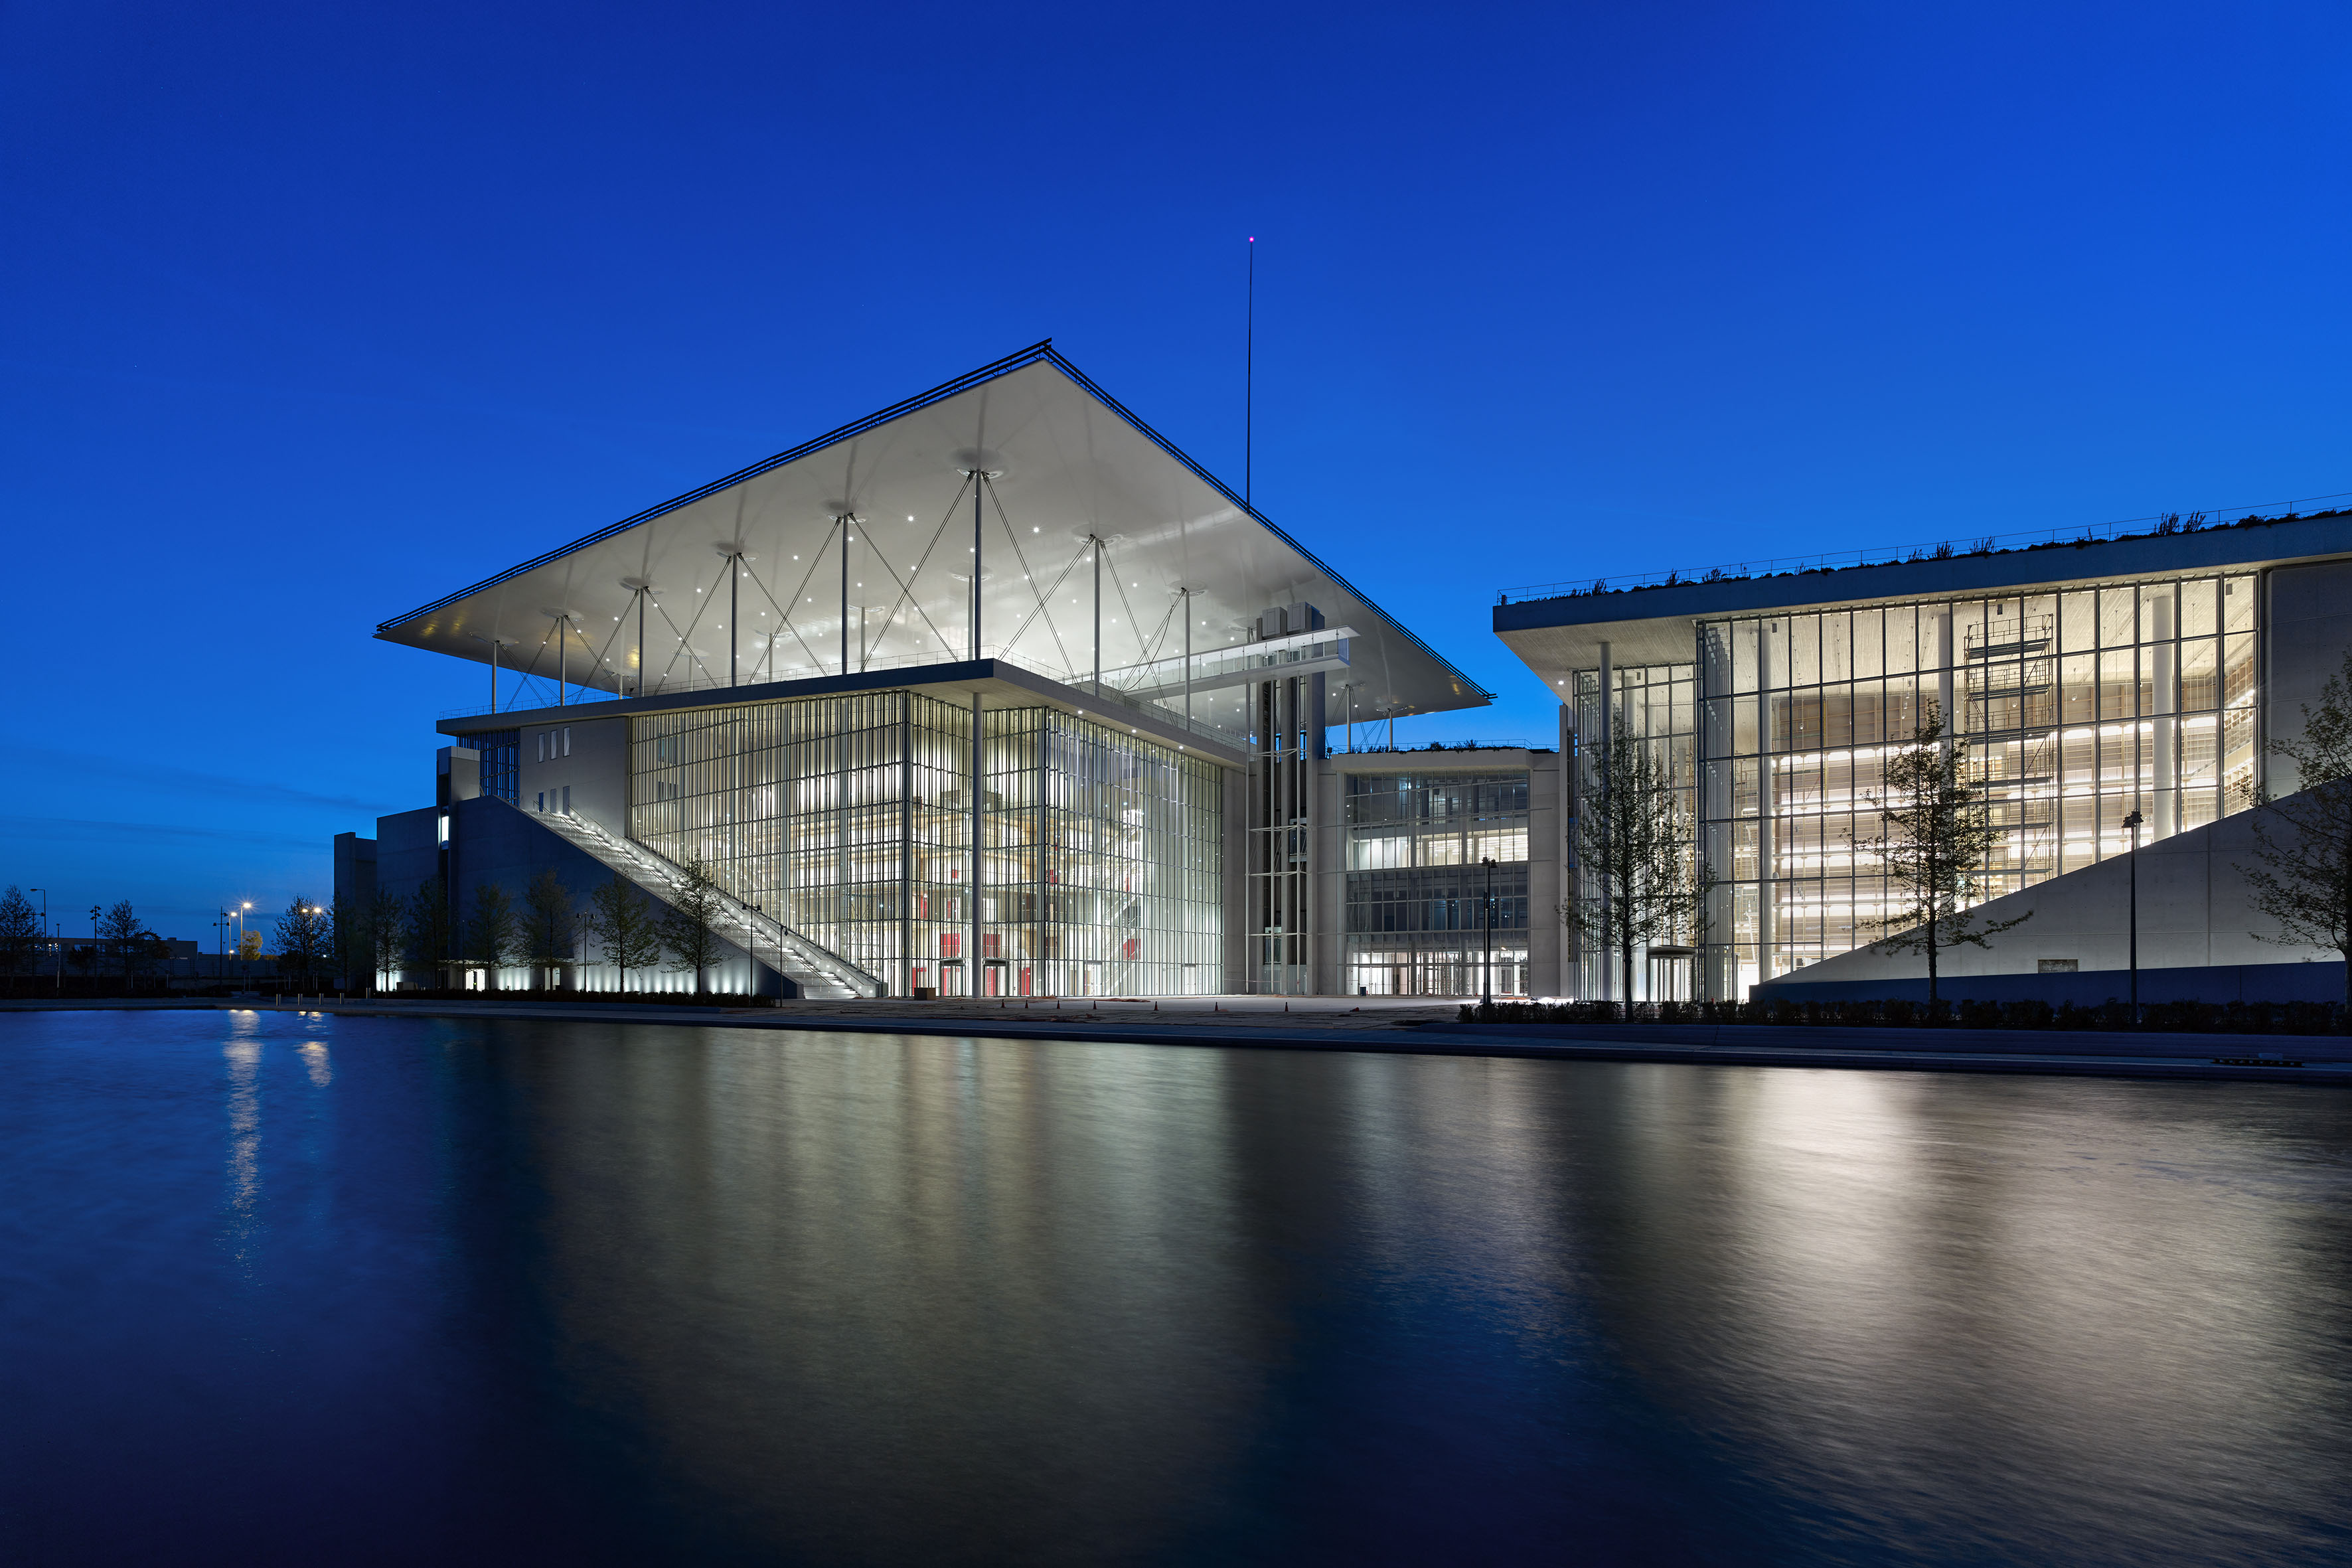 Stavros Niarchos Foundation Cultural Centre 4722 by Yiorgis Yerolymbos The National Opera inaugurates its presence at the Stavros Niarchos Foundation Cultural Center